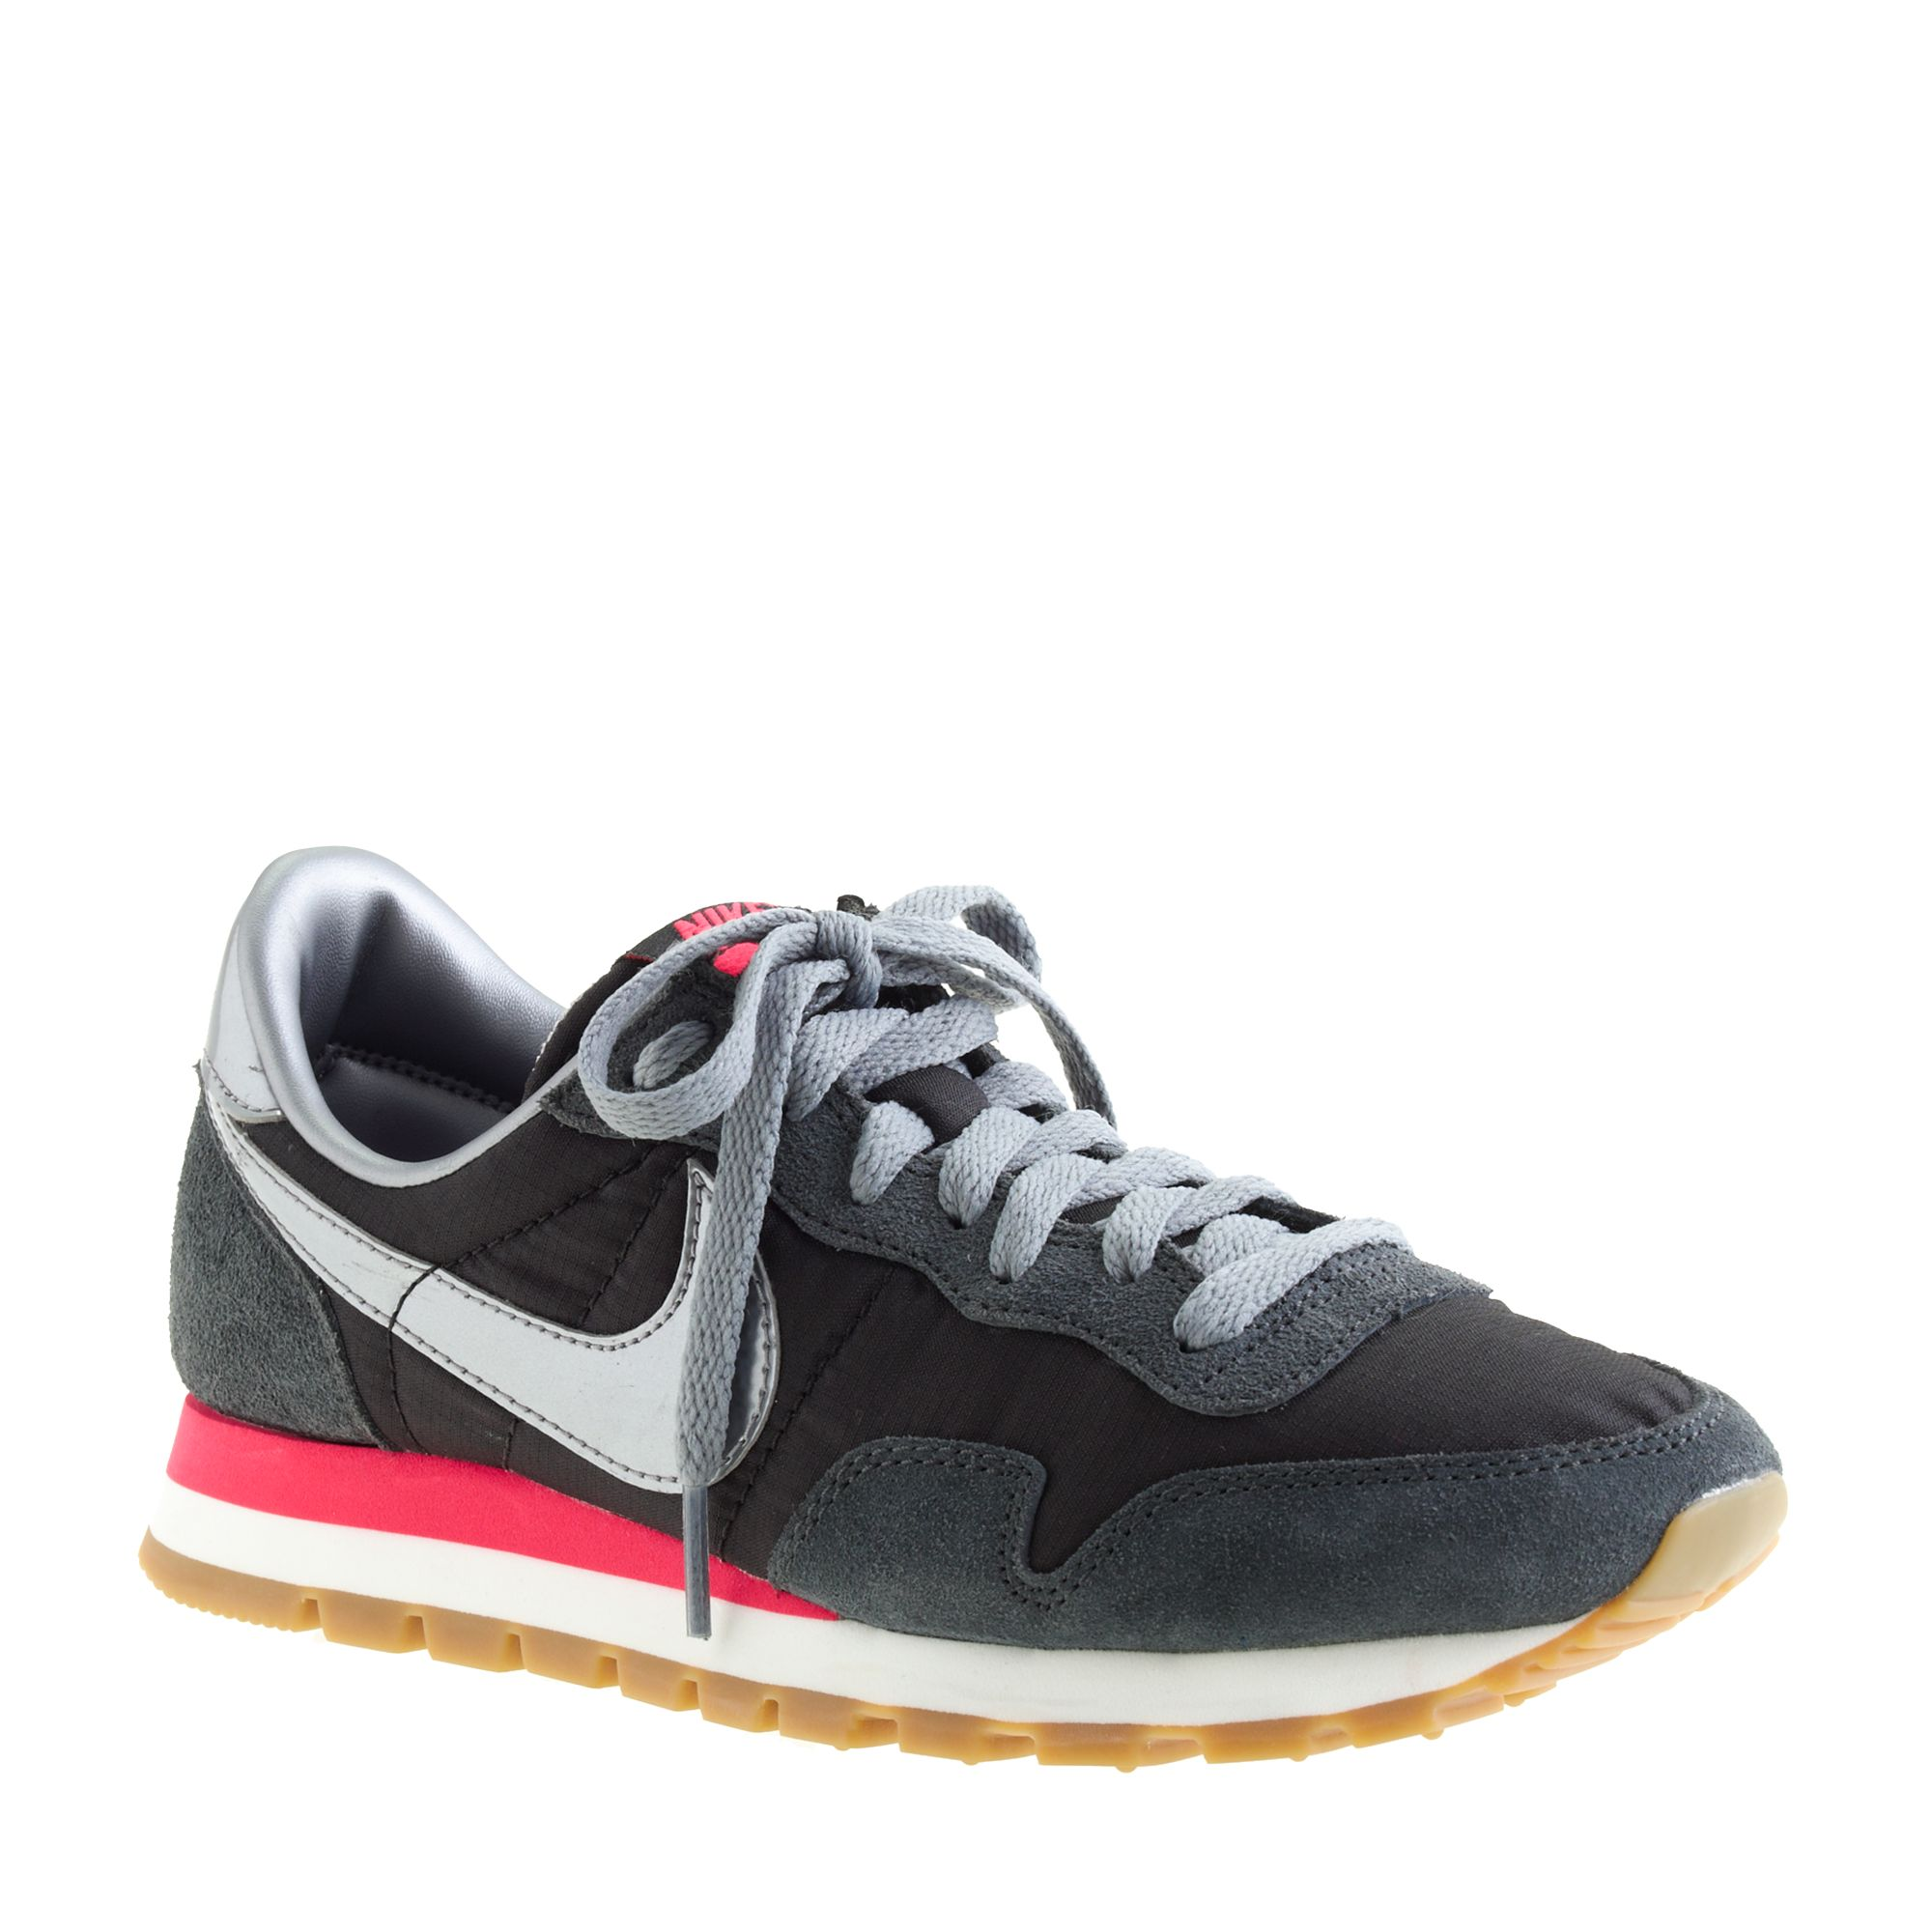 Lyst - J.Crew Nike Vintage Collection Air Pegasus 83 Sneakers in Black e8b467db6